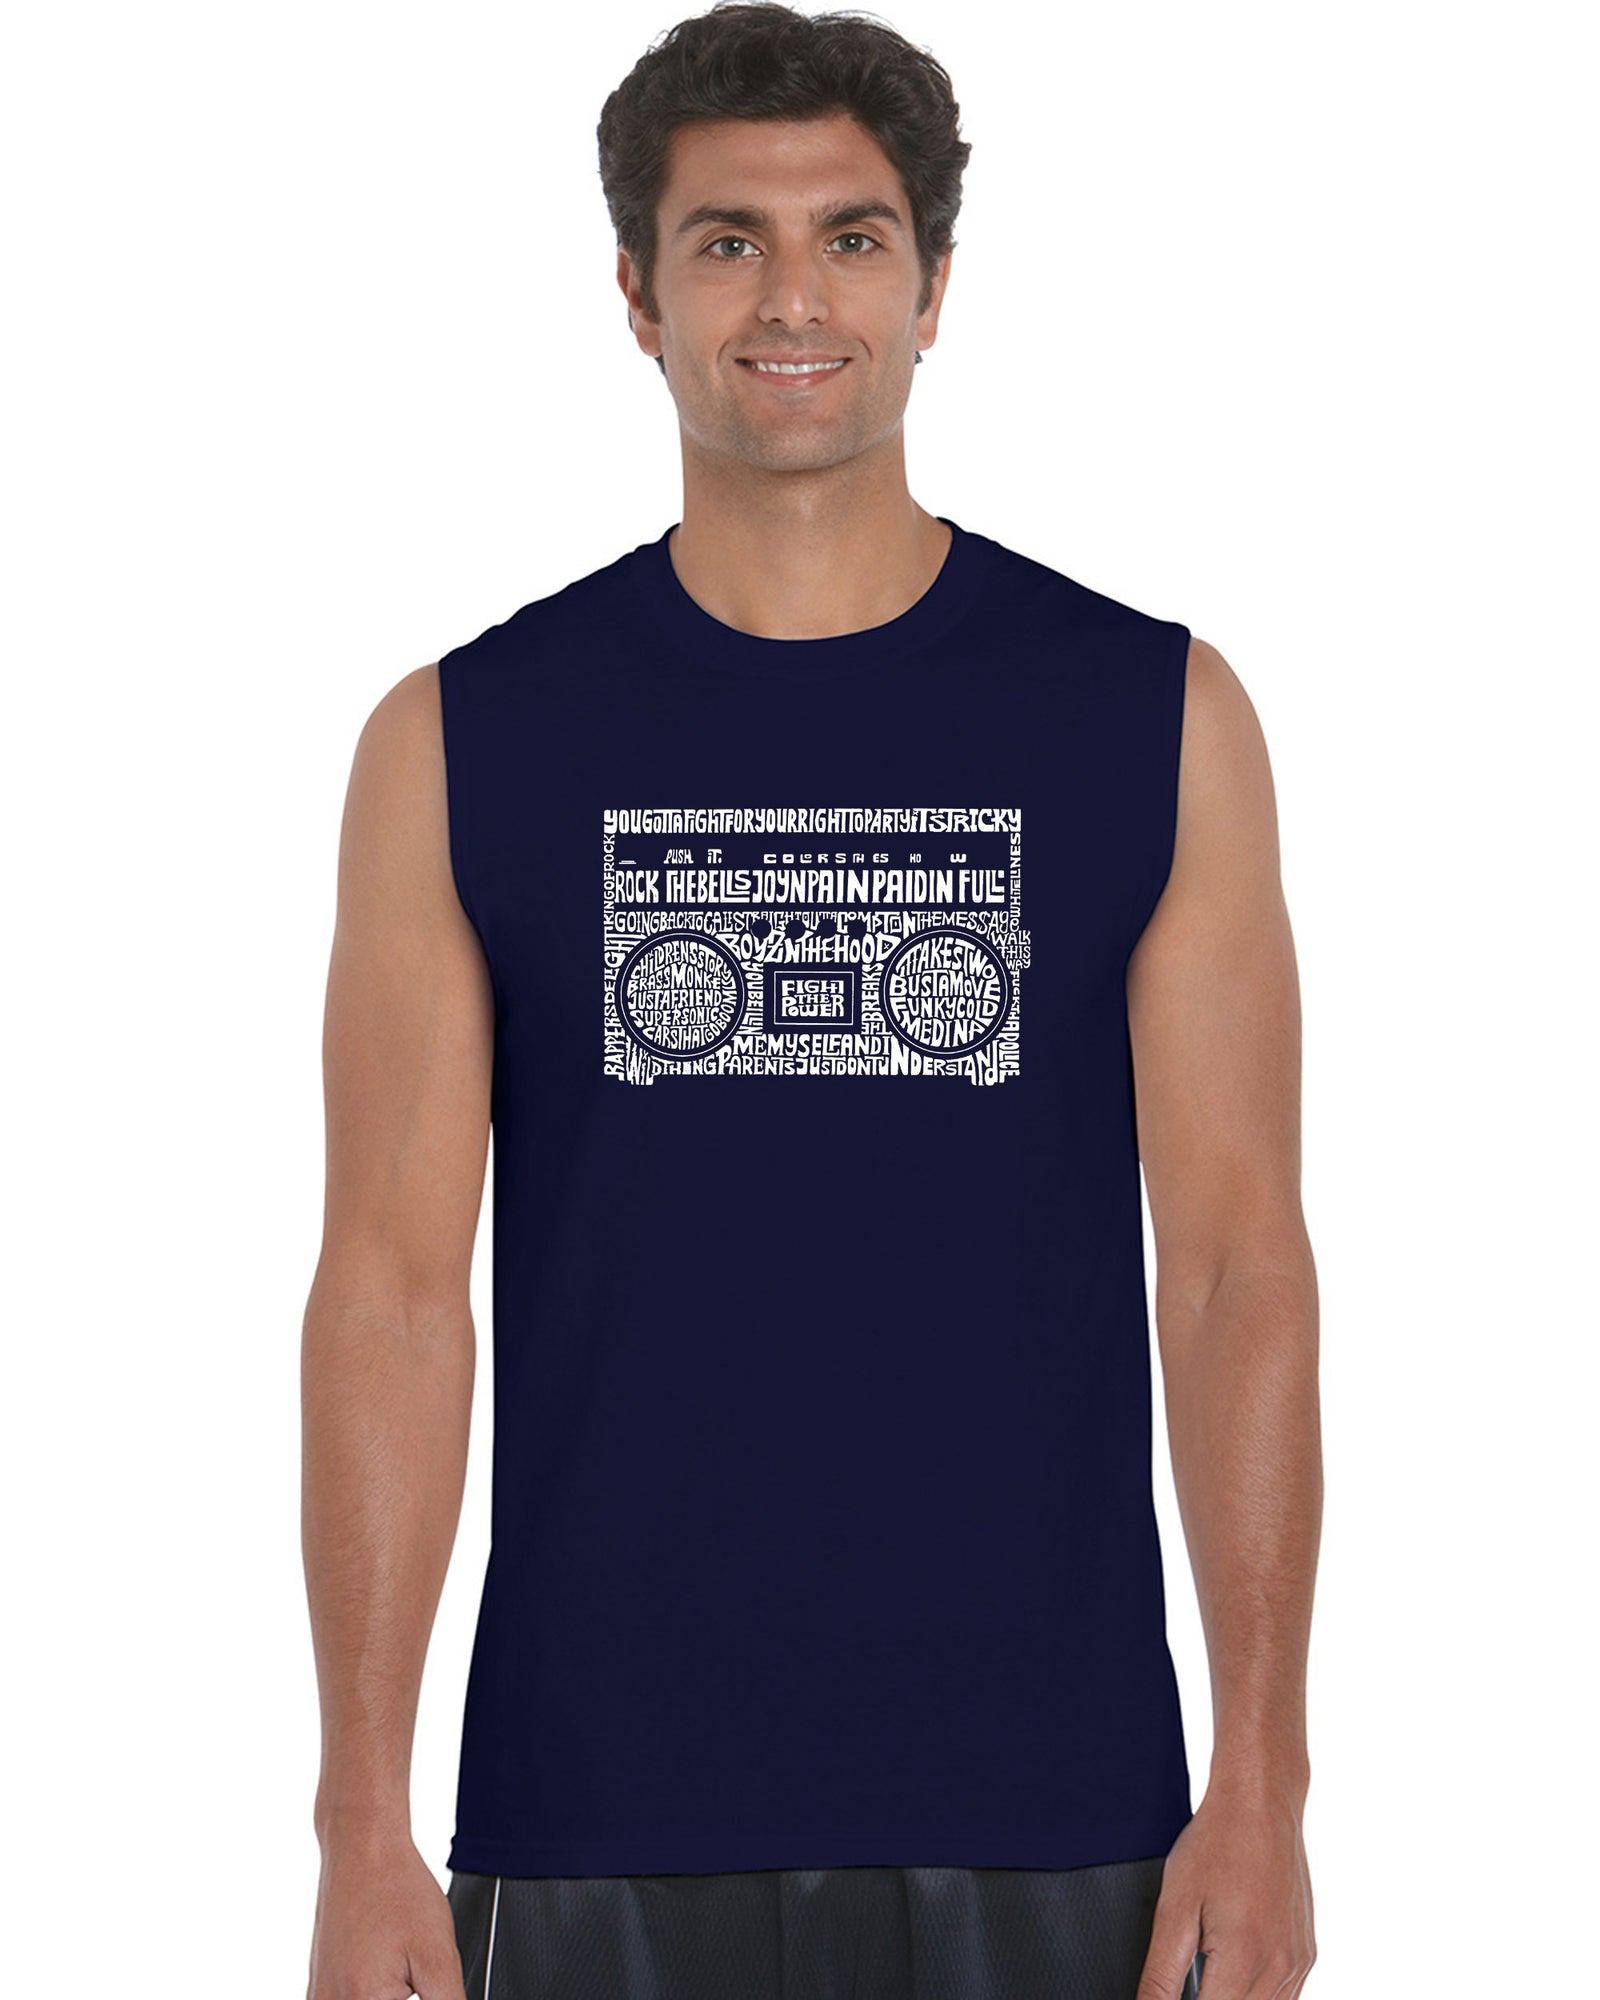 Men's Sleeveless T-shirt - Greatest Rap Hits of The 1980's